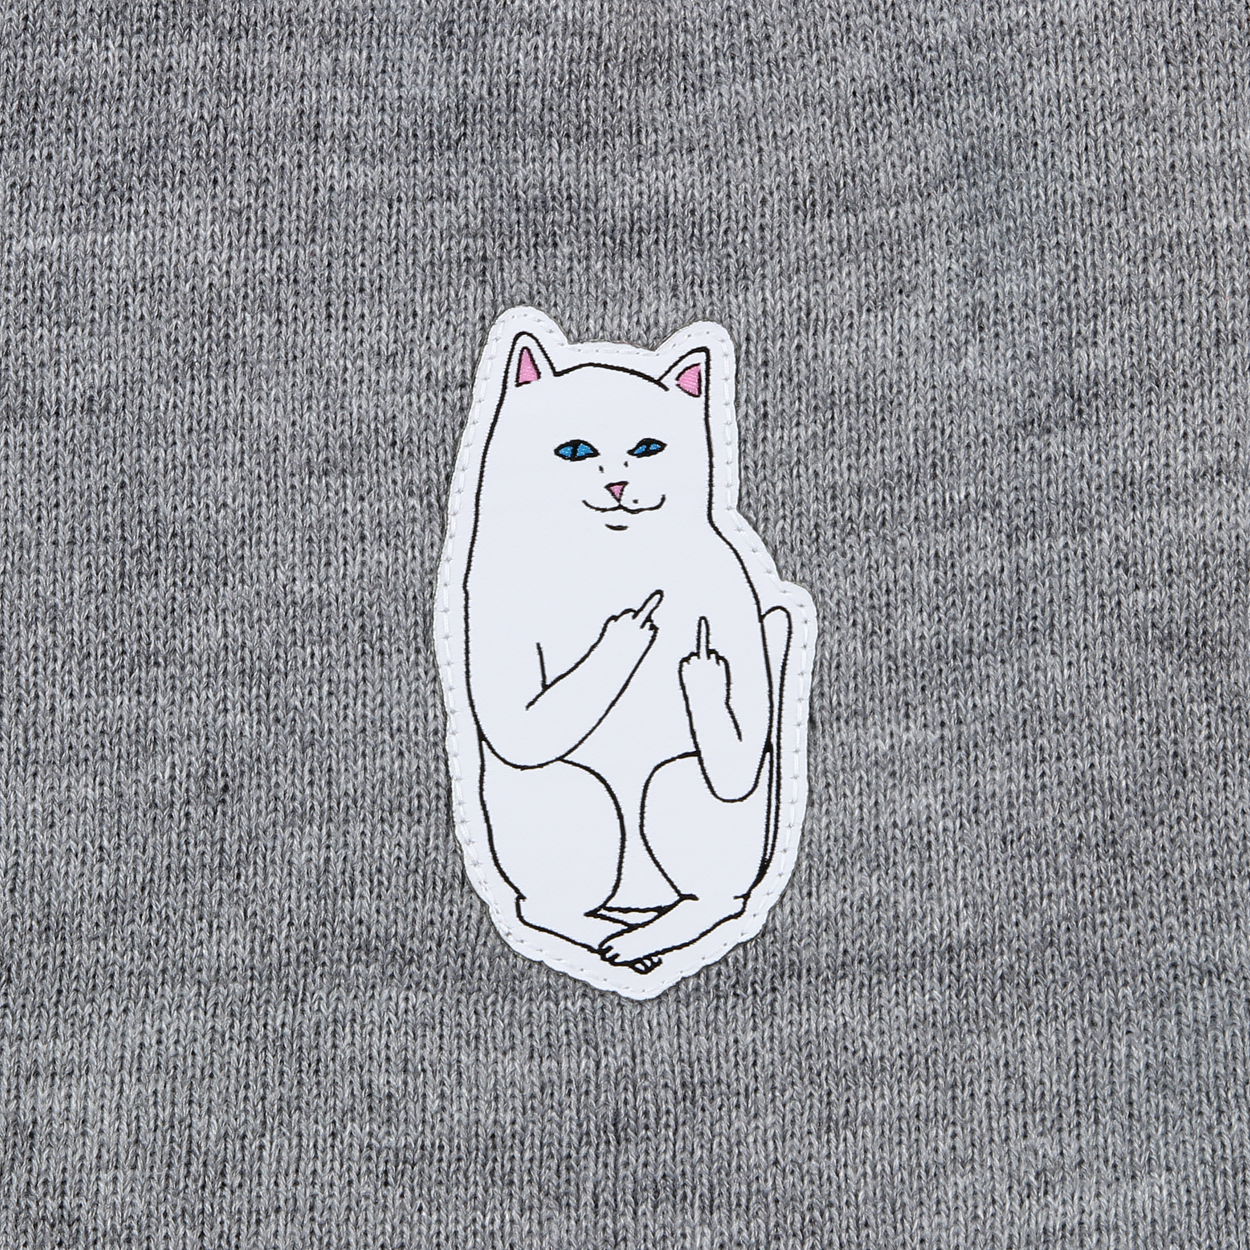 cc42d1c7496 Protect your ears with the Lord Nermal beanie hat from Ripndip. Logo  embroidery of the Lord himself is featured on the front of the hat.